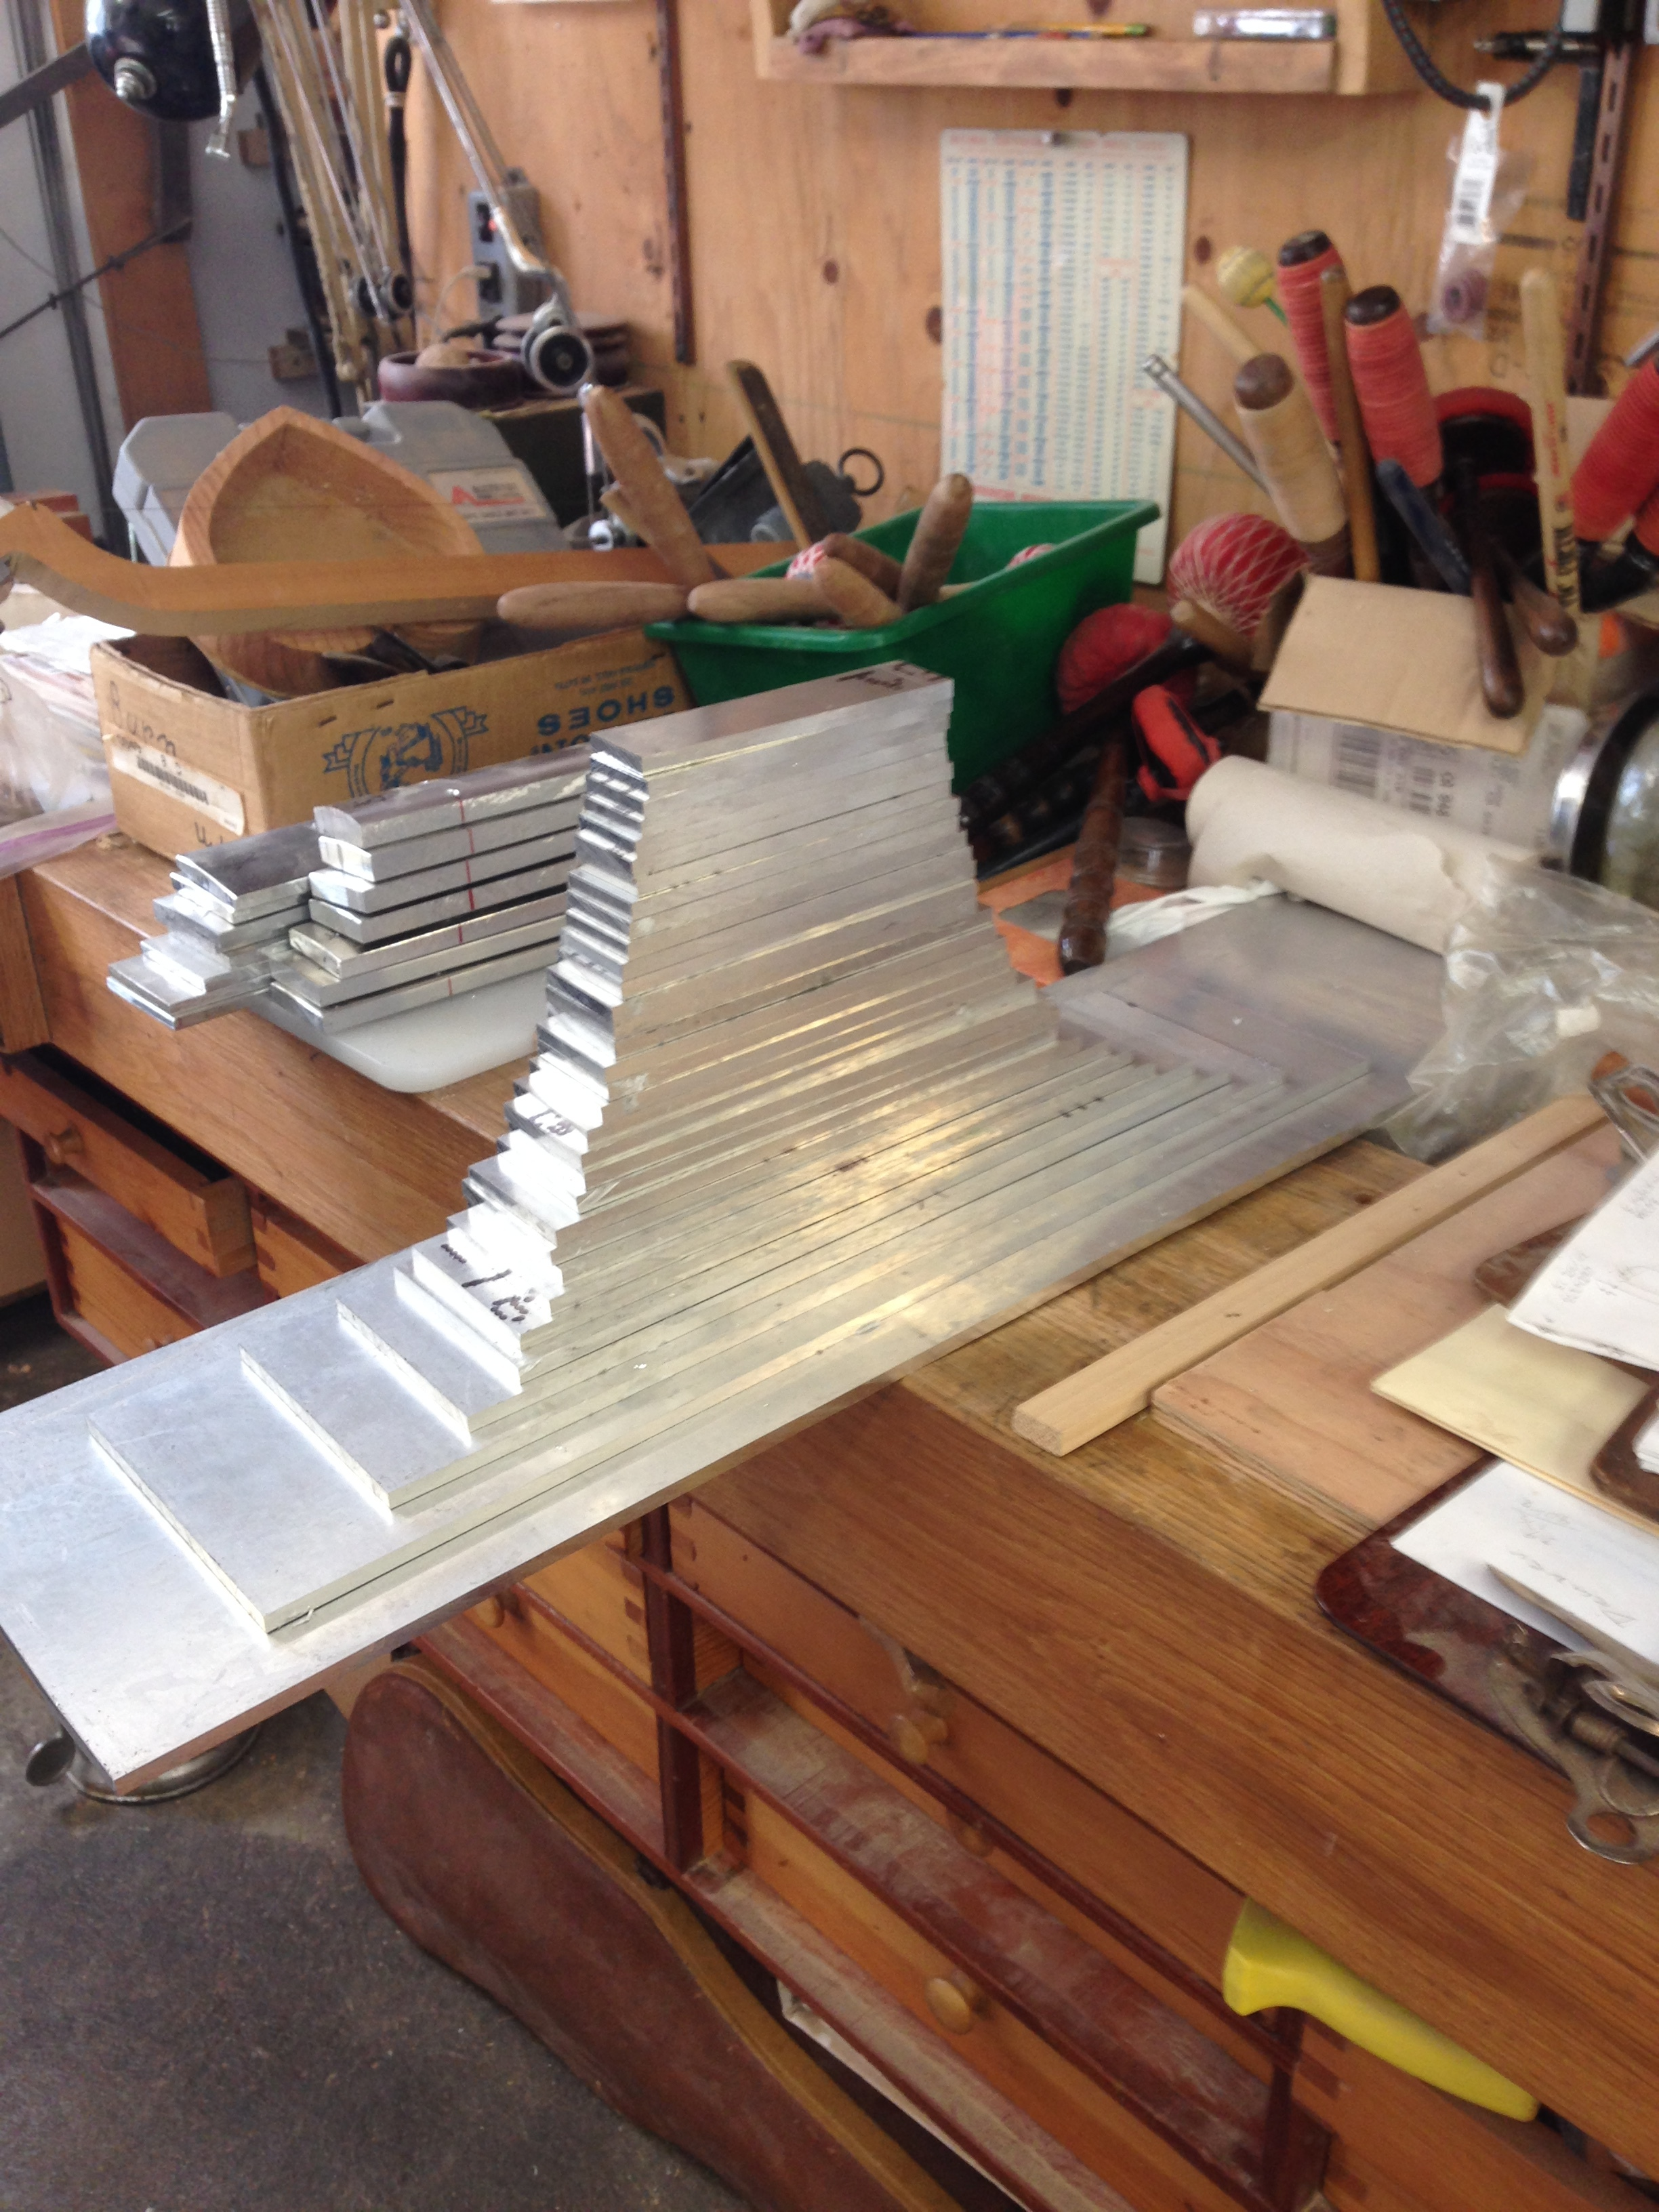 Keys cut and stacked - did I mention width to length of each key is a 4:1 ratio?